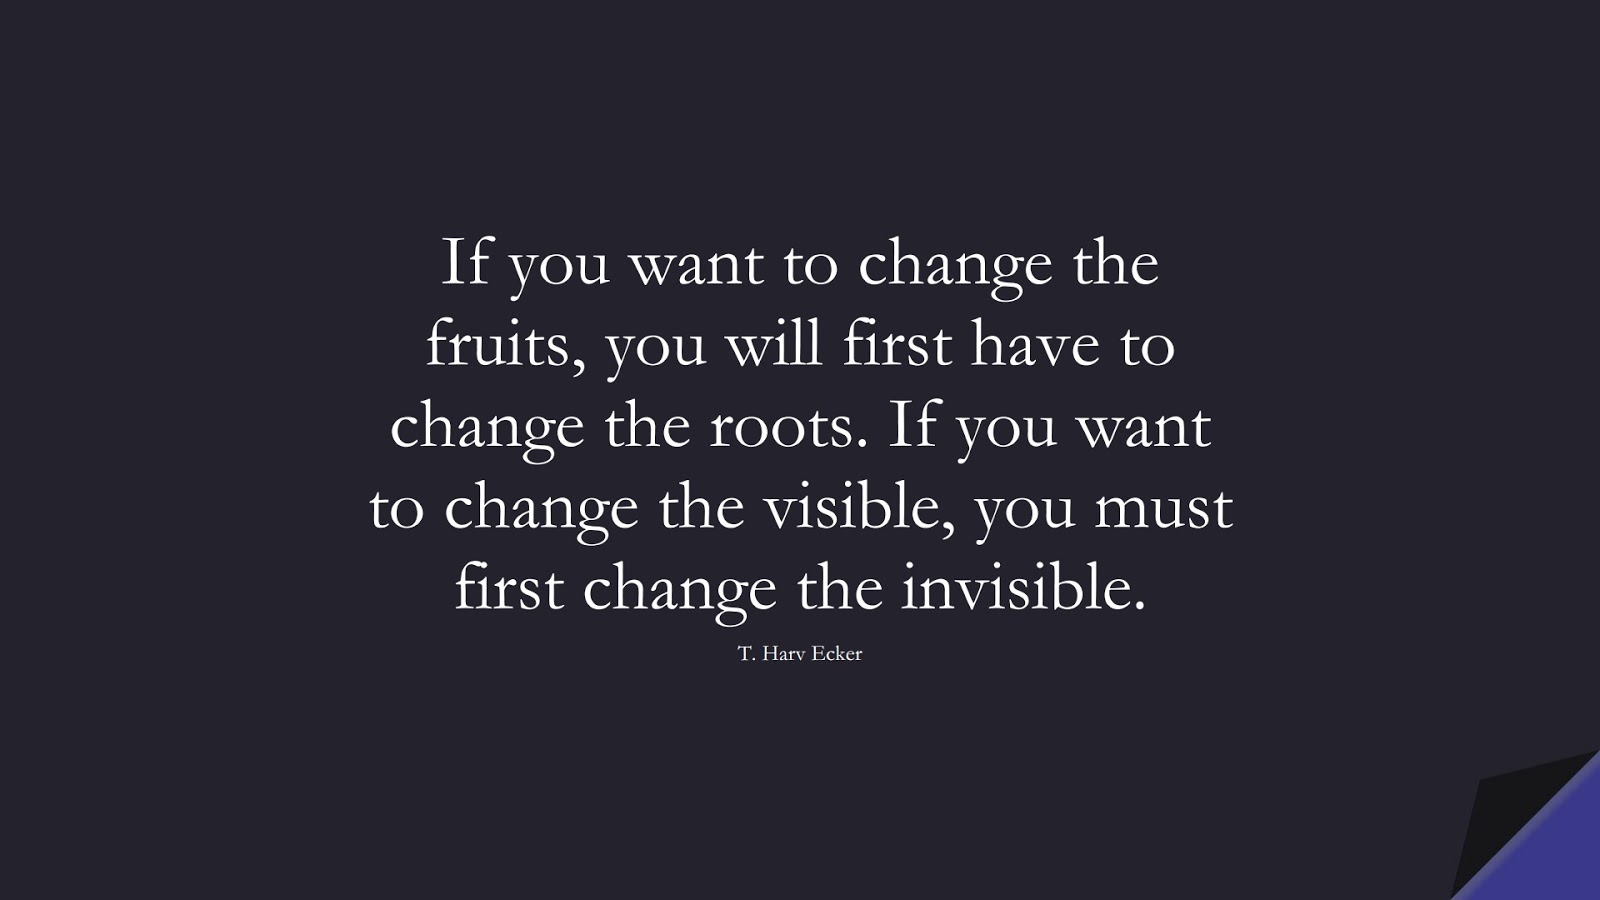 If you want to change the fruits, you will first have to change the roots. If you want to change the visible, you must first change the invisible. (T. Harv Ecker);  #WordsofWisdom